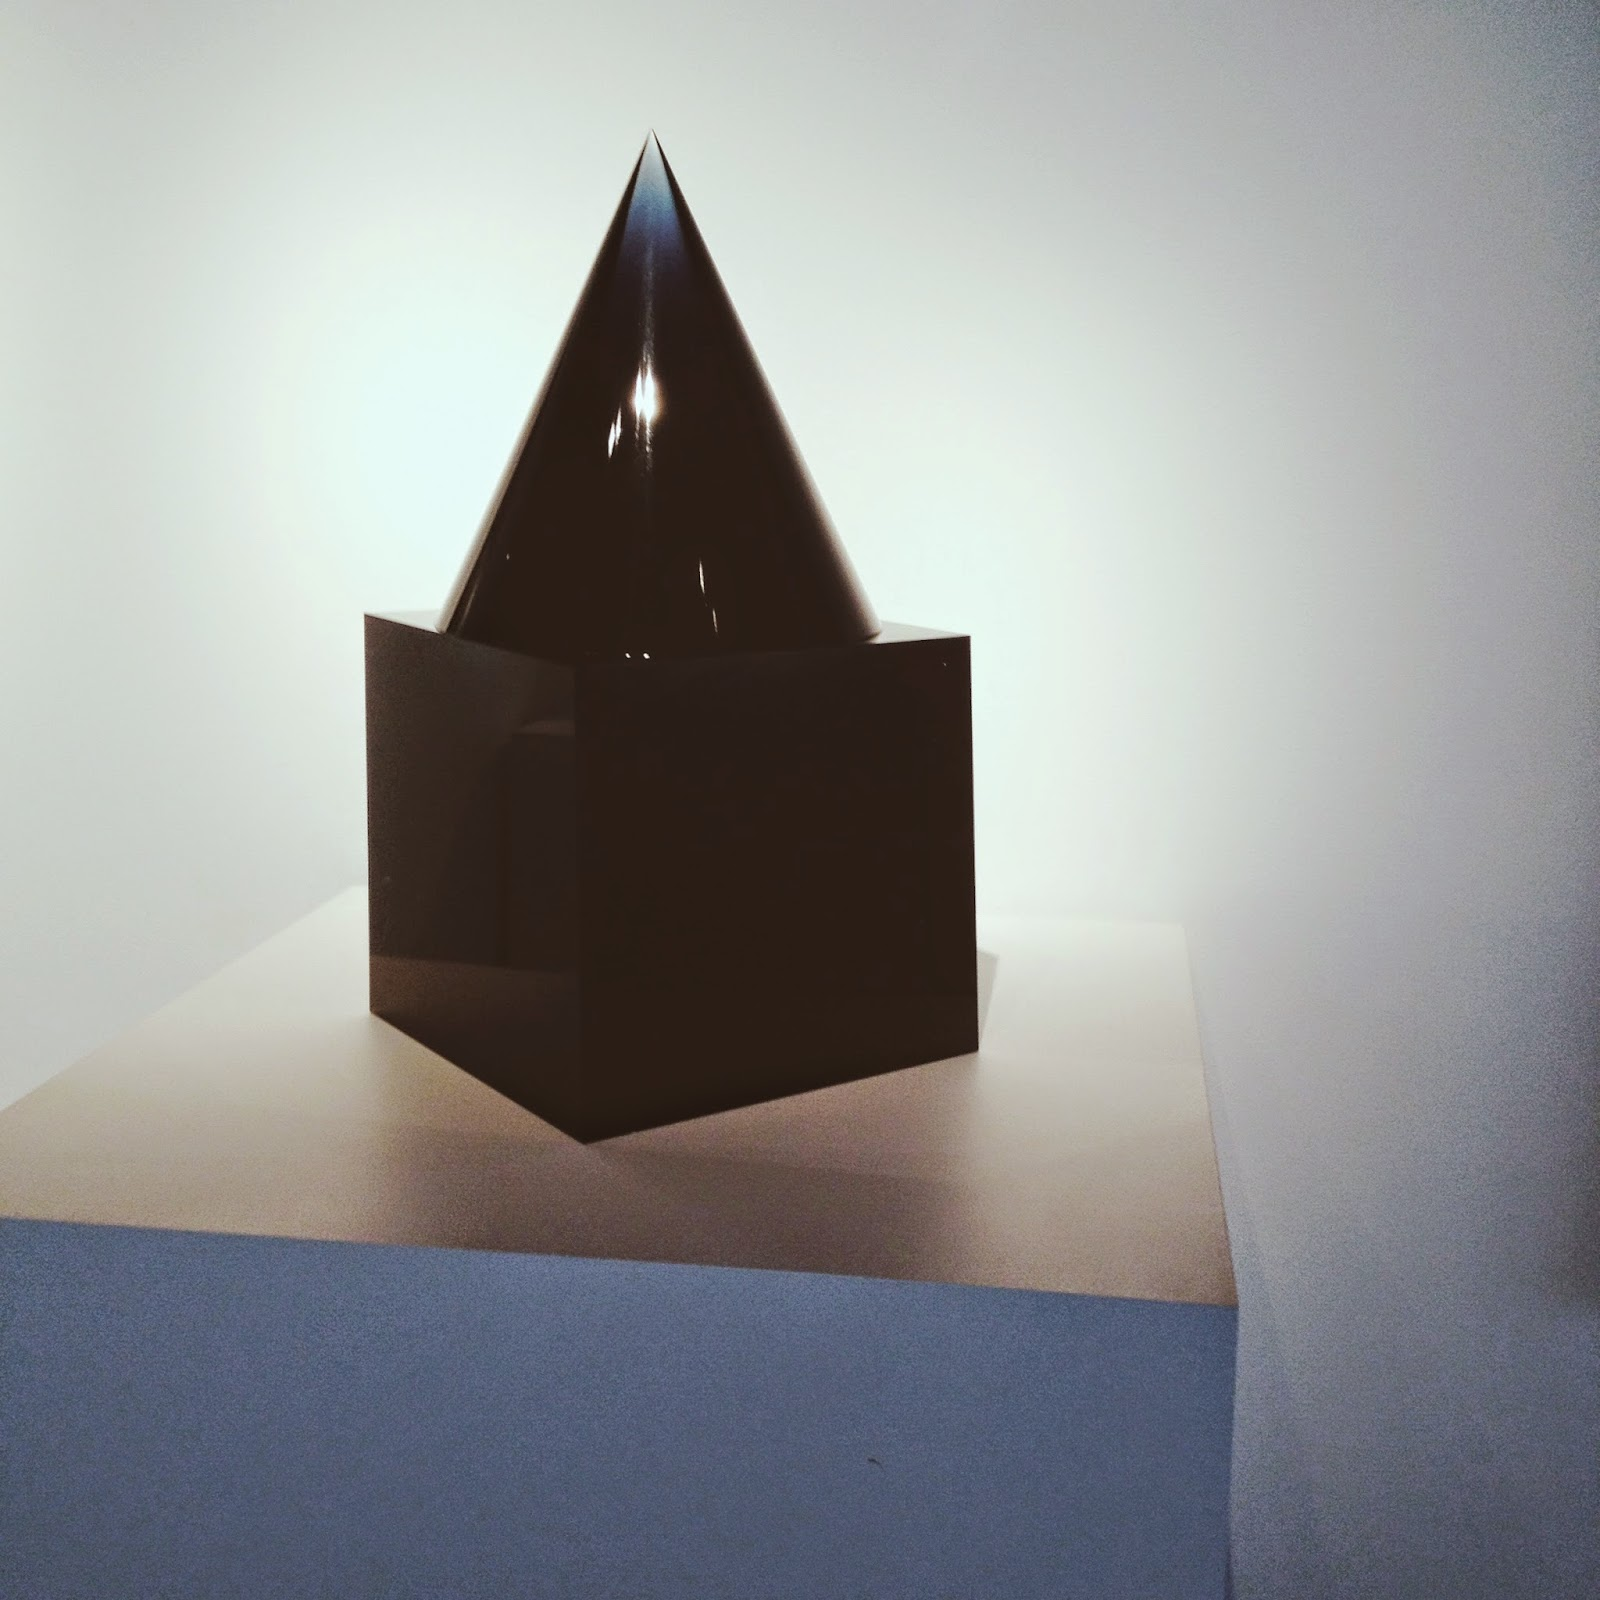 black, glass sculpture at Corning Museum of Glass